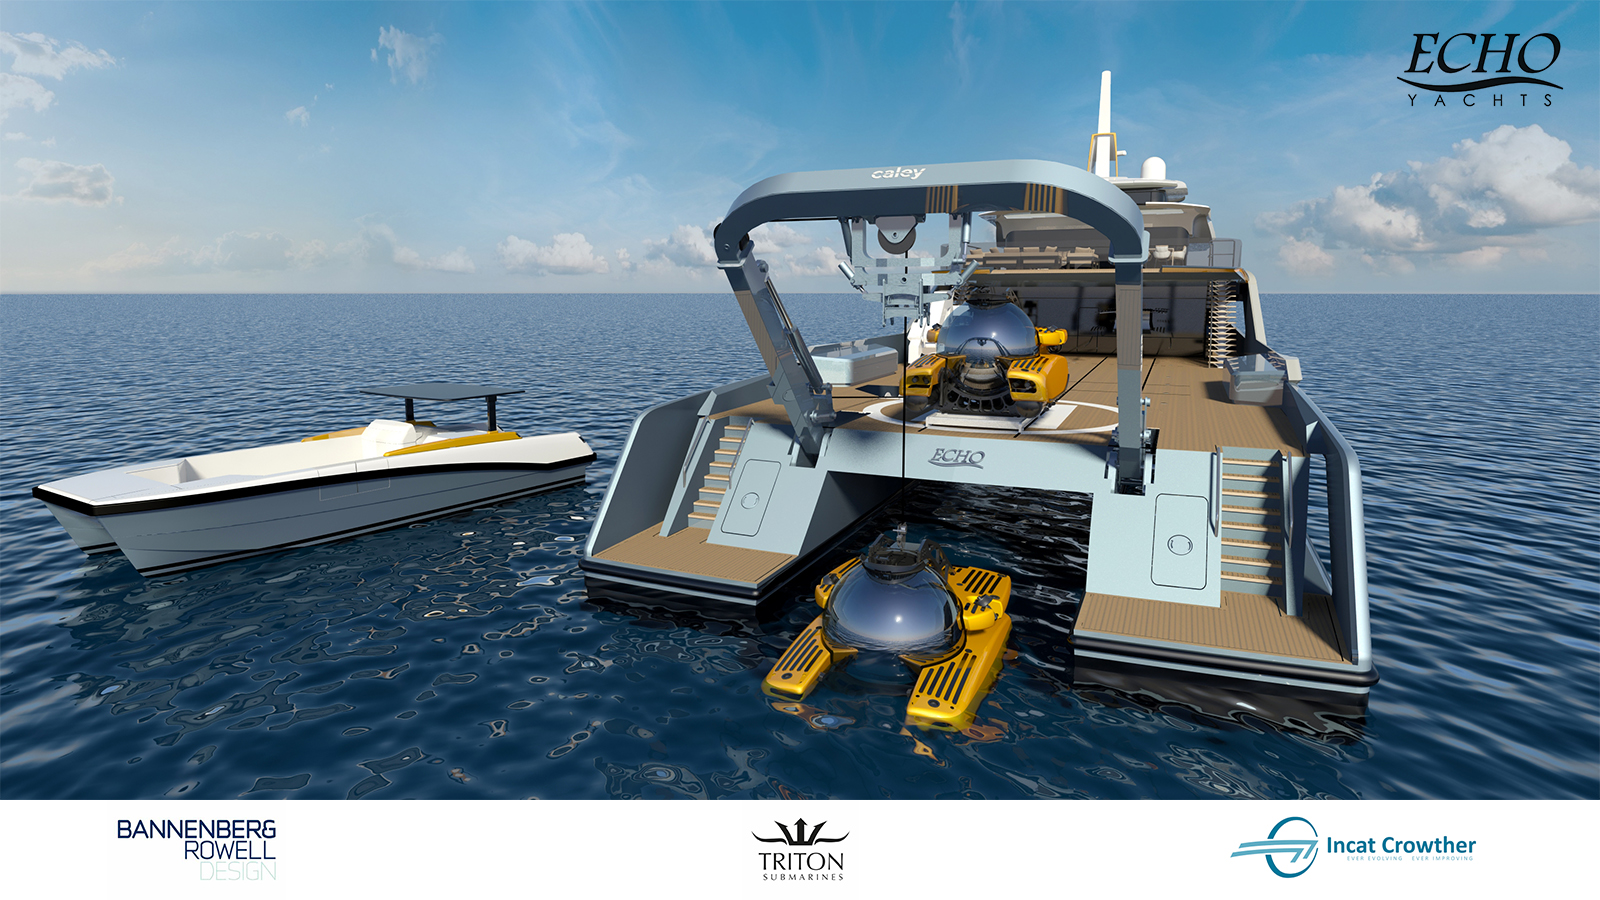 Project Echo Adventure Yacht